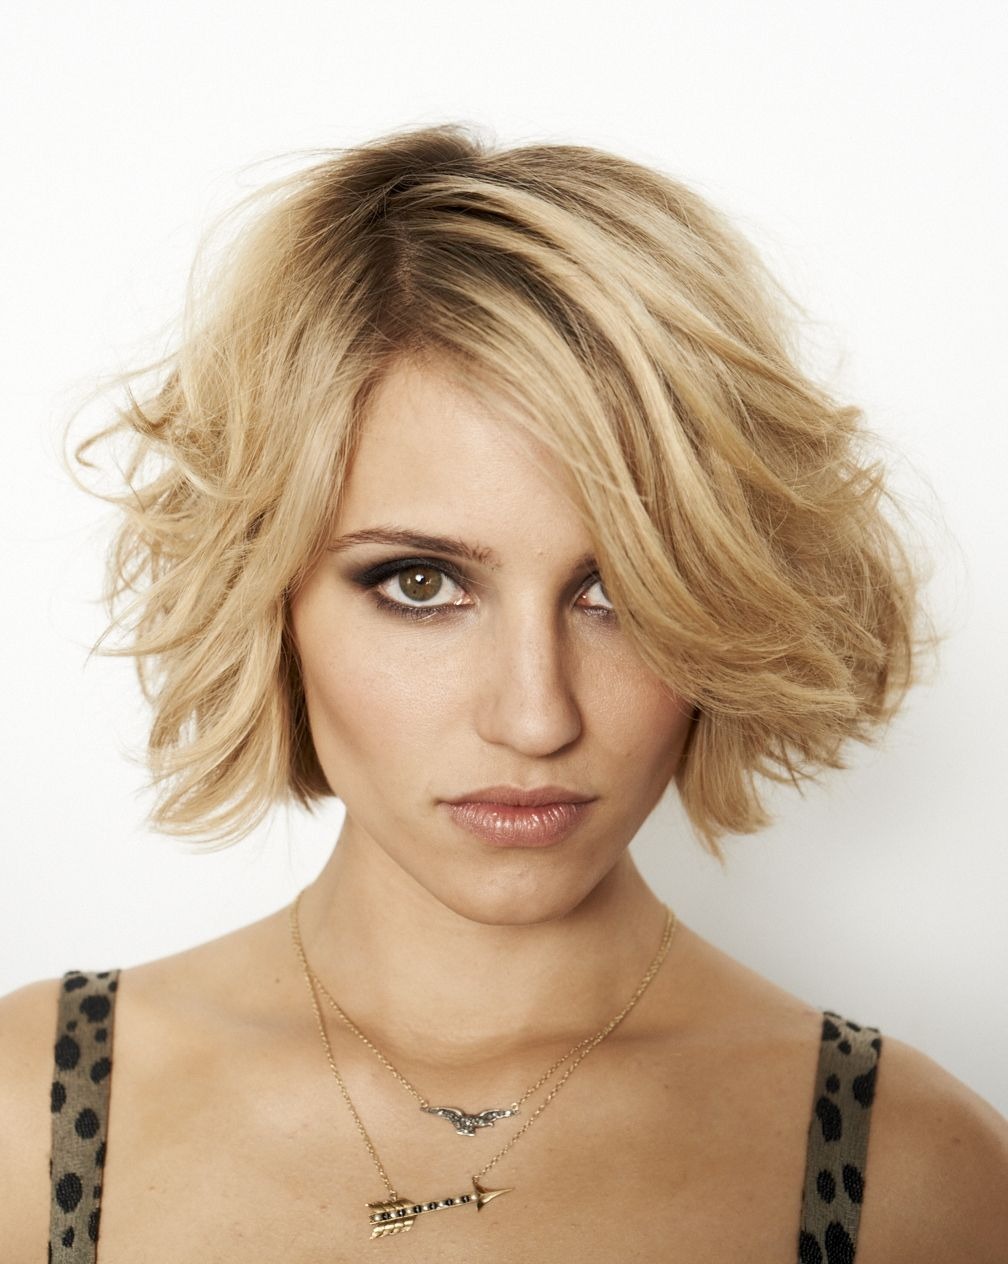 Quinn Fabray Dianna Agron cheveux courts